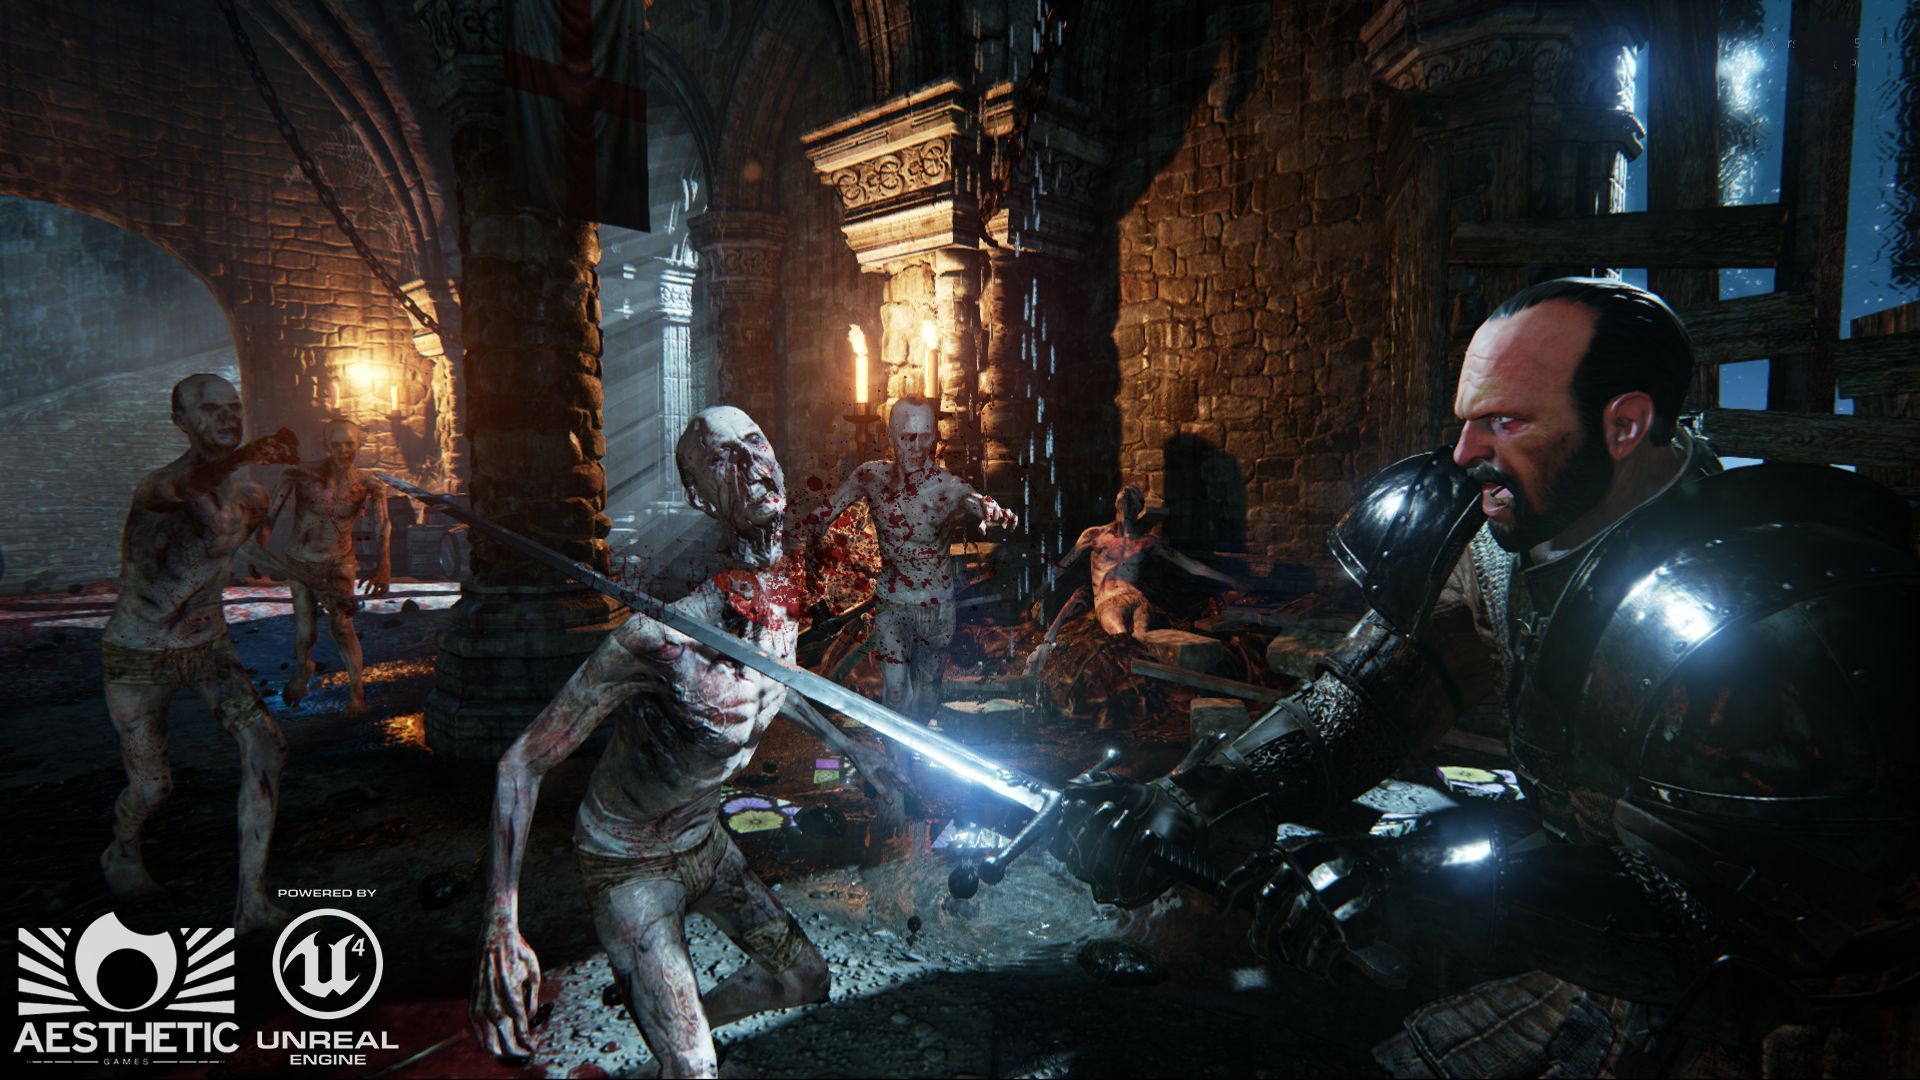 dead crusade is a medieval coop horror game powered by